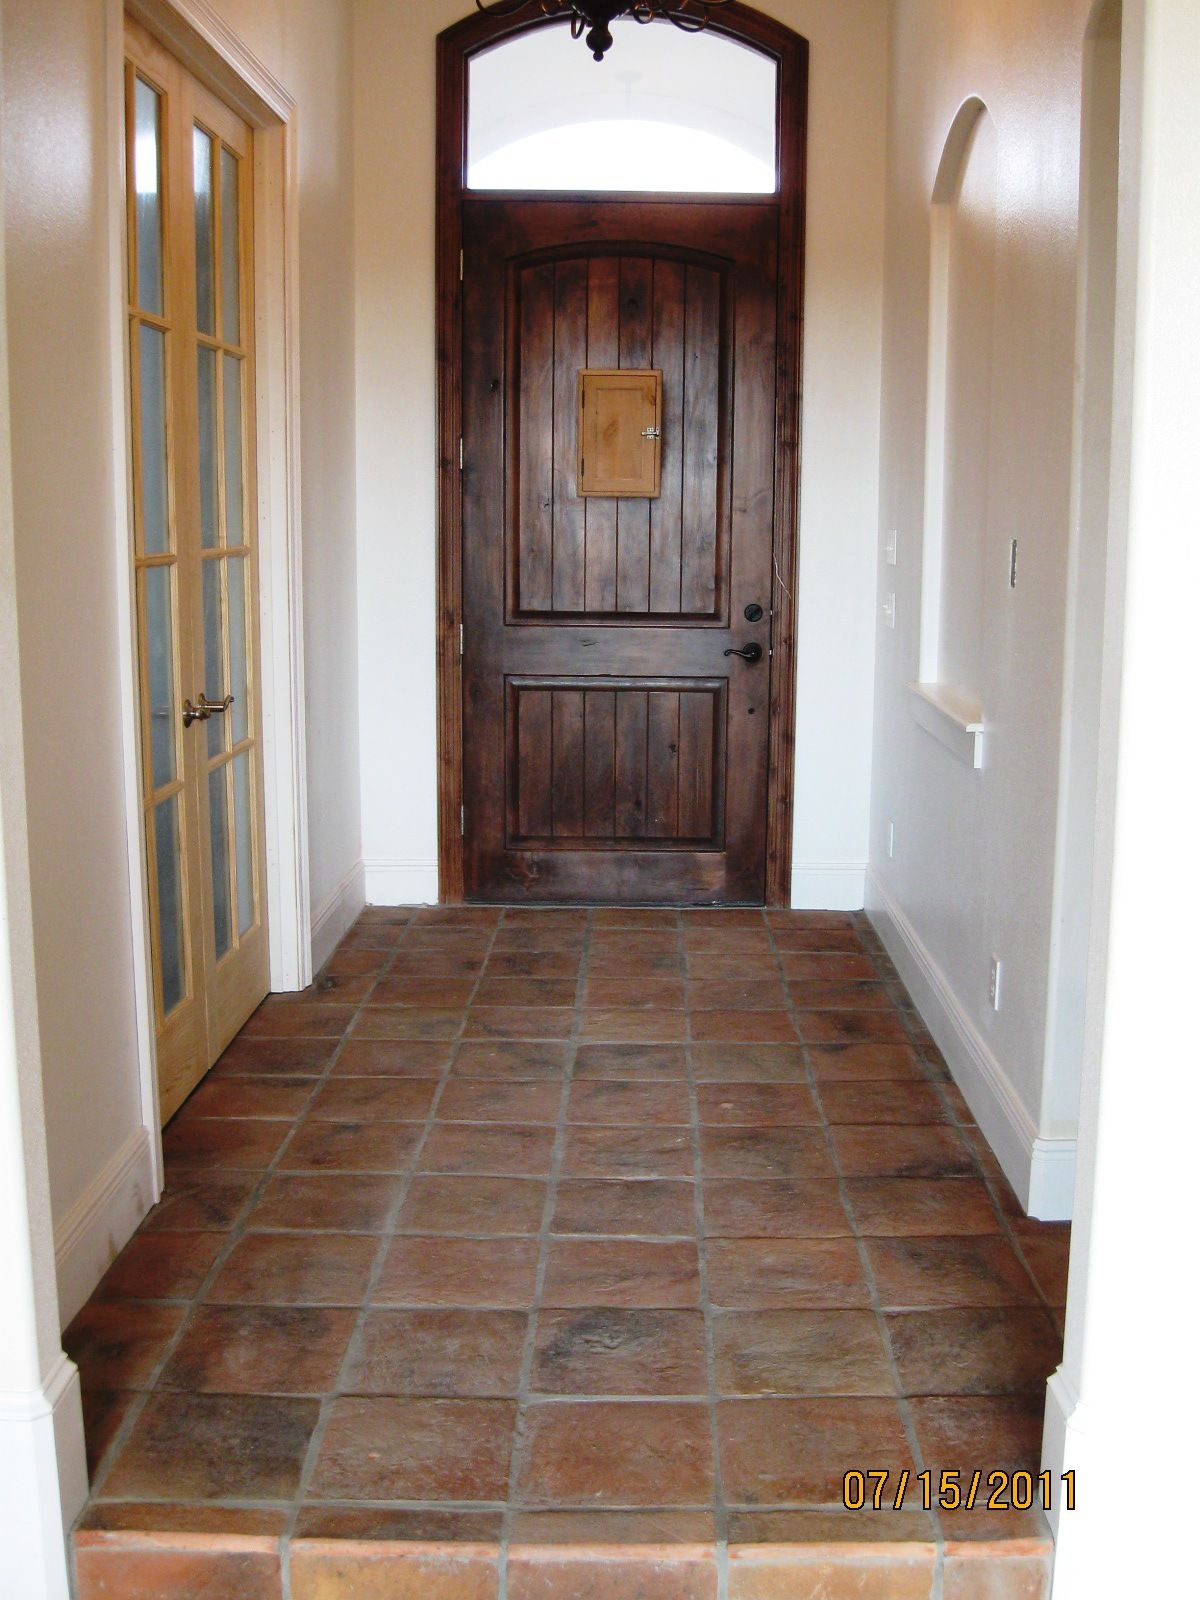 This entry is lined with Authentic Mexican flooring and the Antique Saltillo was also used throughout the kitchen. The terracotta really adds character to the Spanish style home.